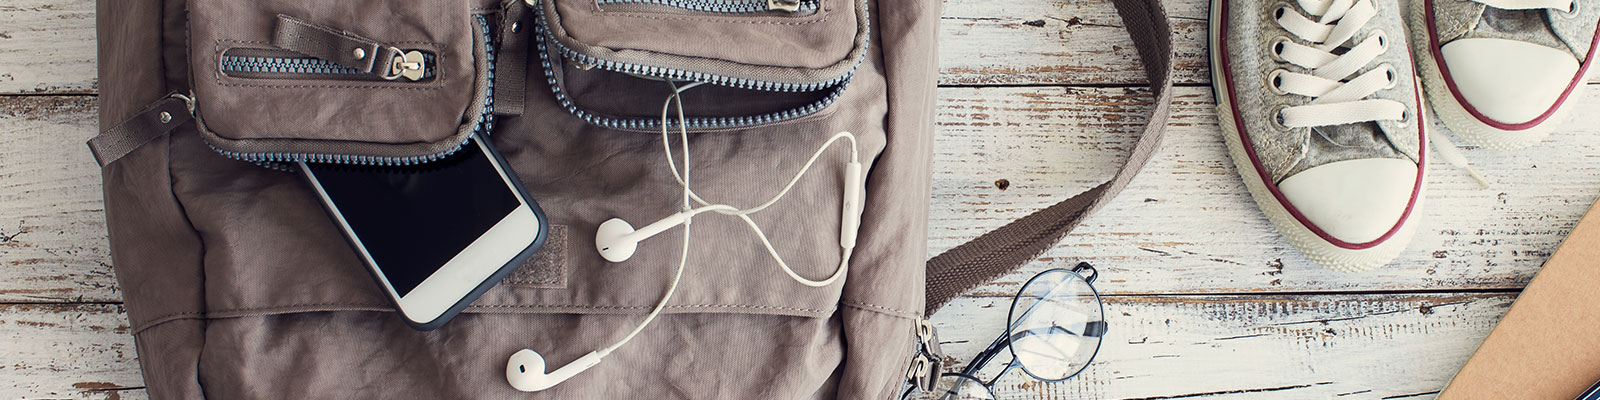 backpack, cell phone, earbuds and sneakers